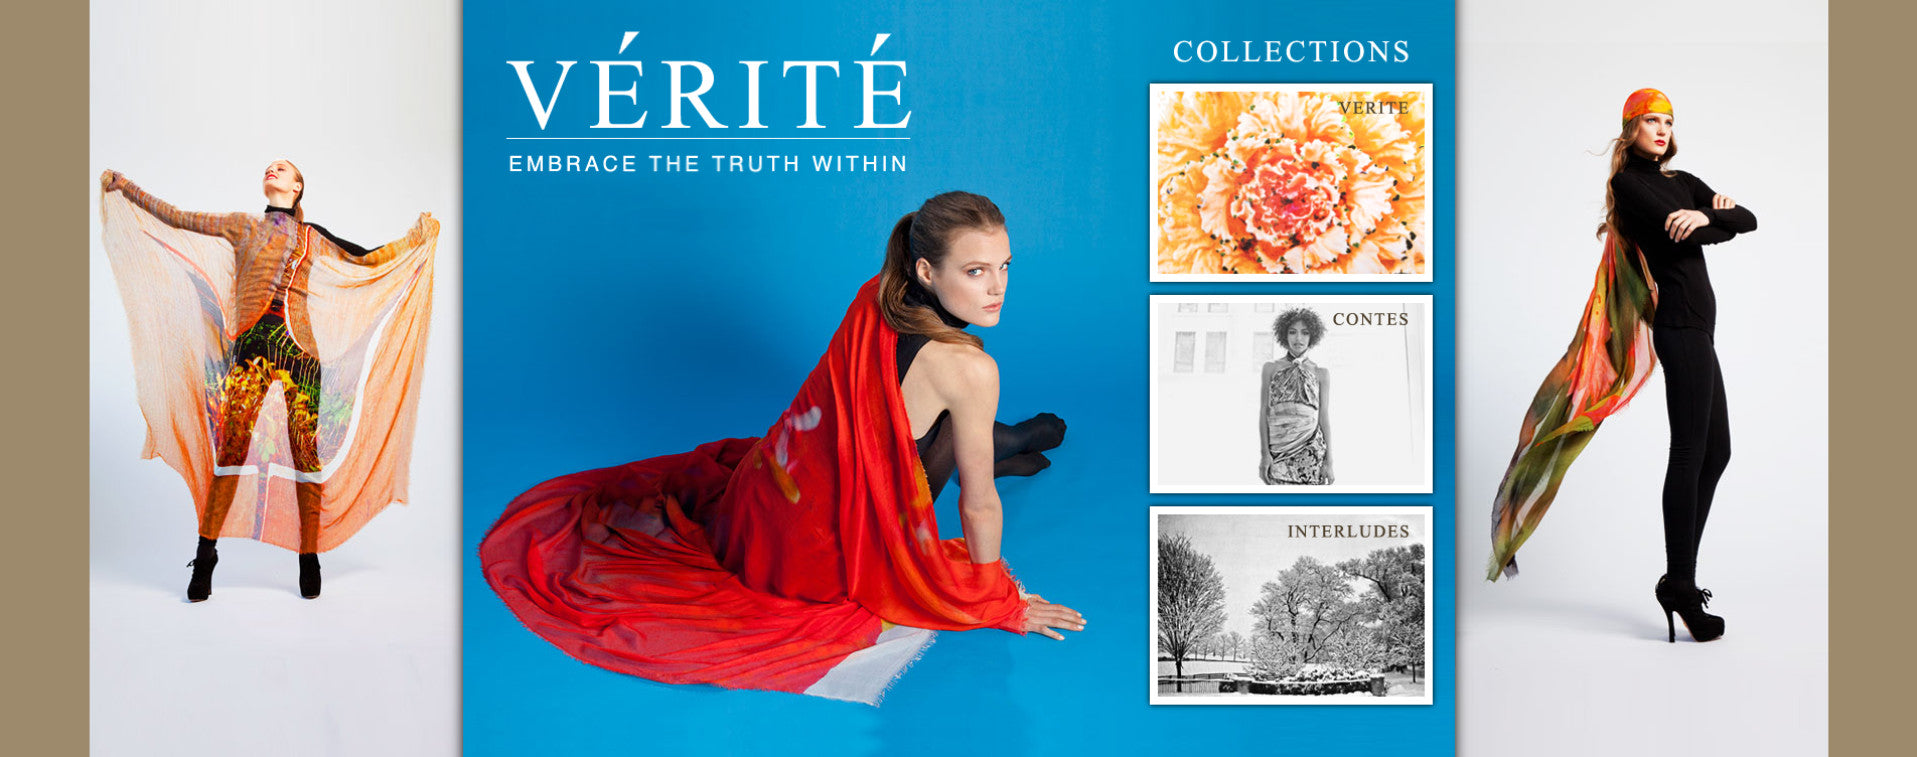 Vérité - The Sheila Johnson Collection